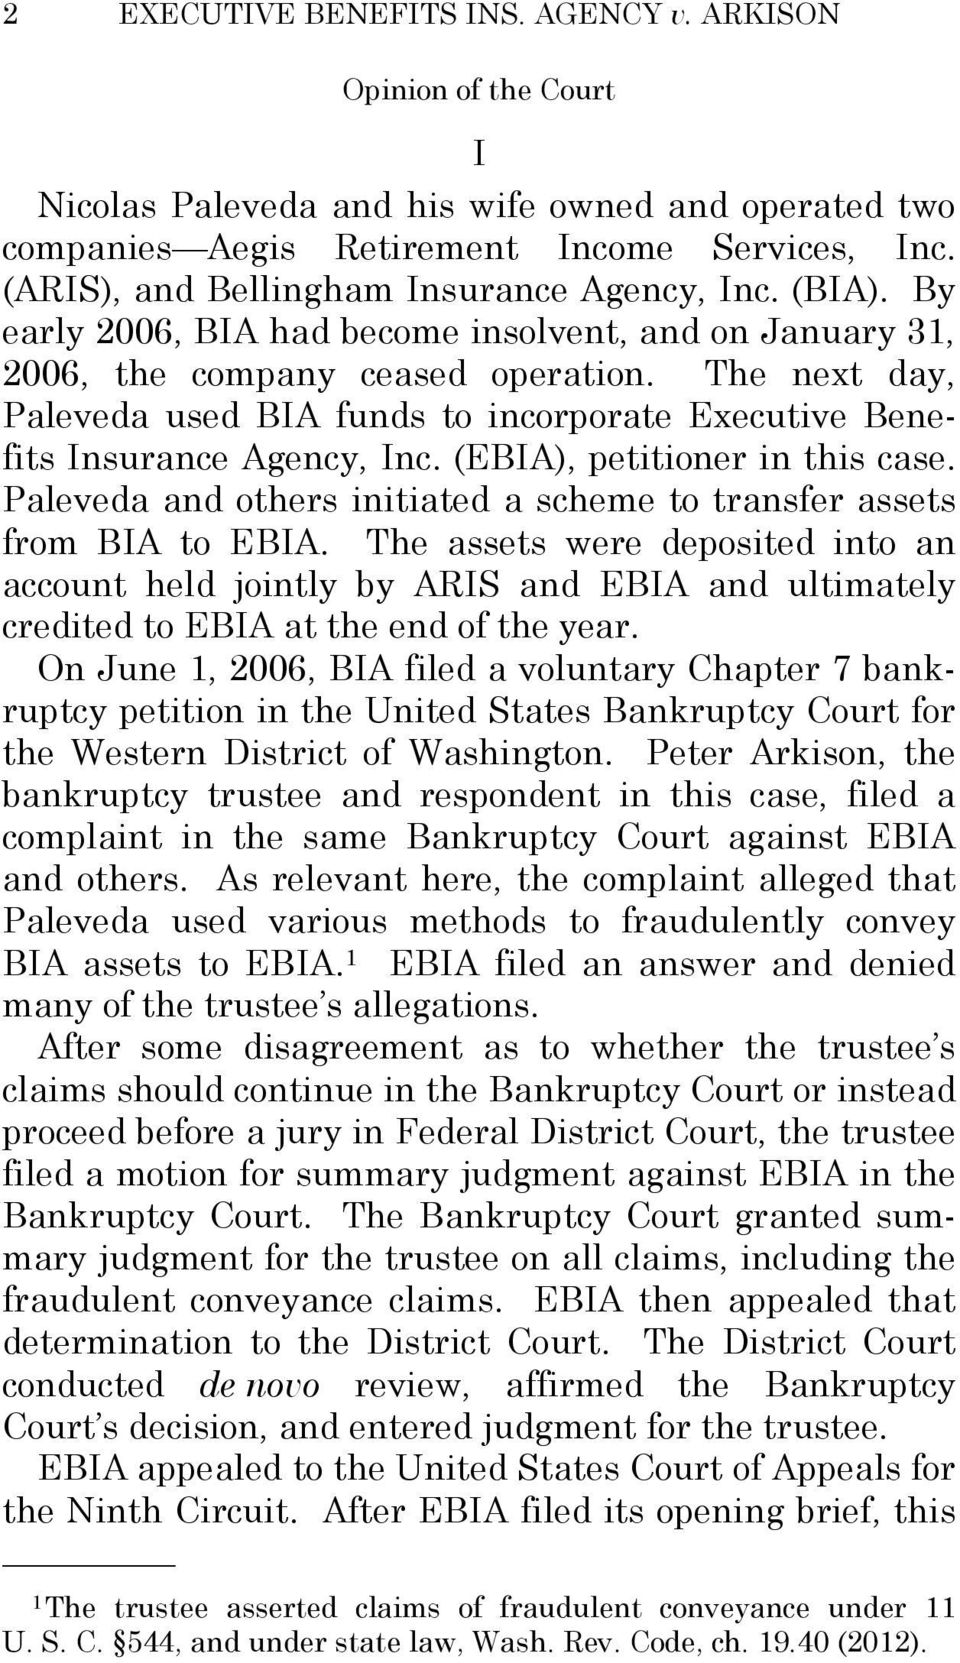 (EBIA), petitioner in this case. Paleveda and others initiated a scheme to transfer assets from BIA to EBIA.